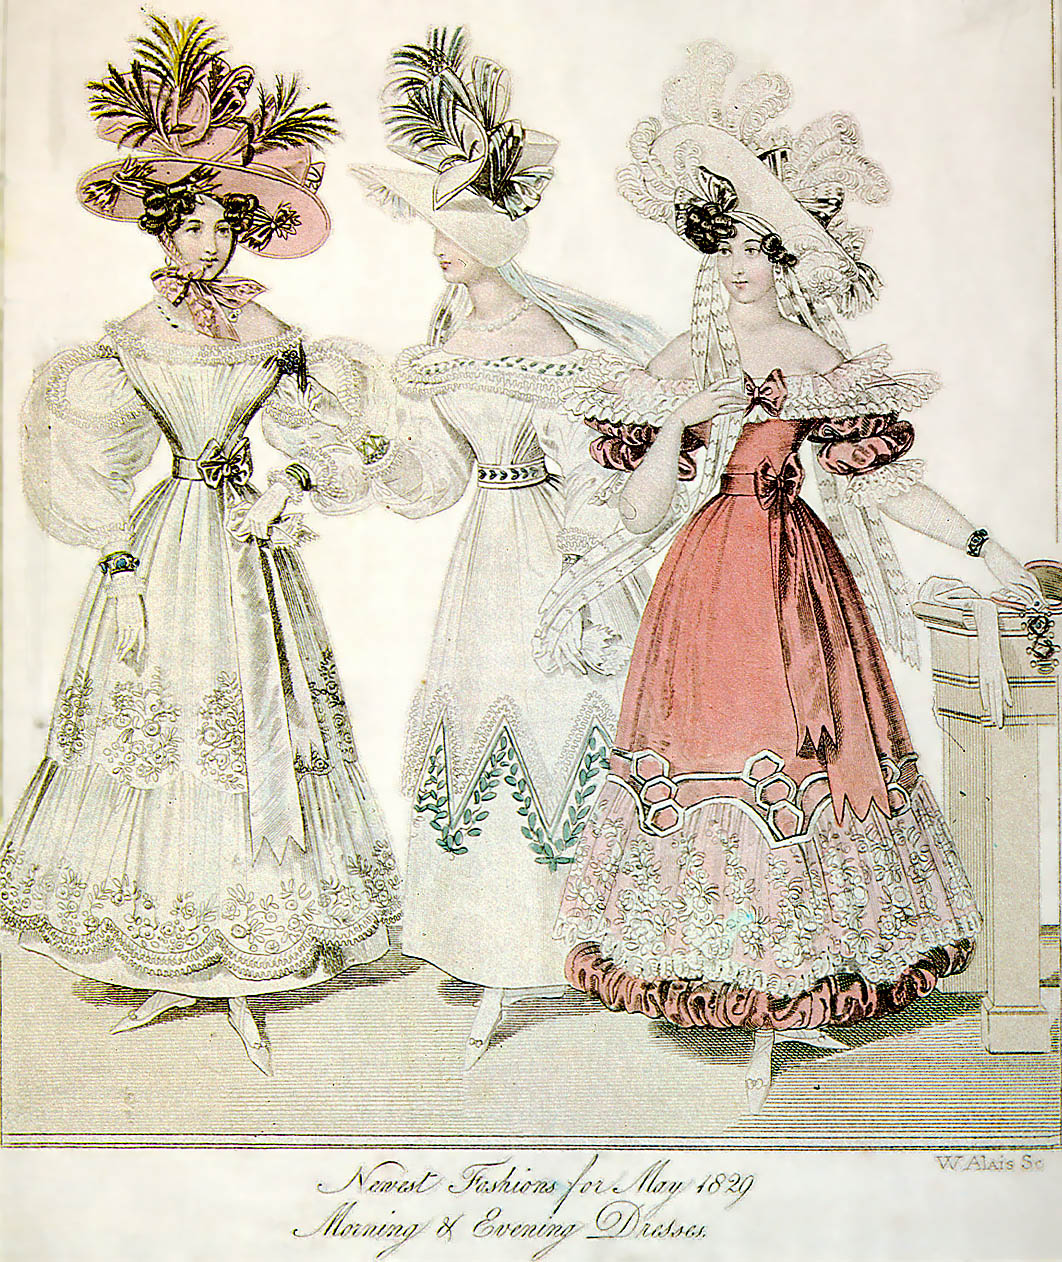 File:1829-Morning-Evening-Dresses-World-of-Fashion-